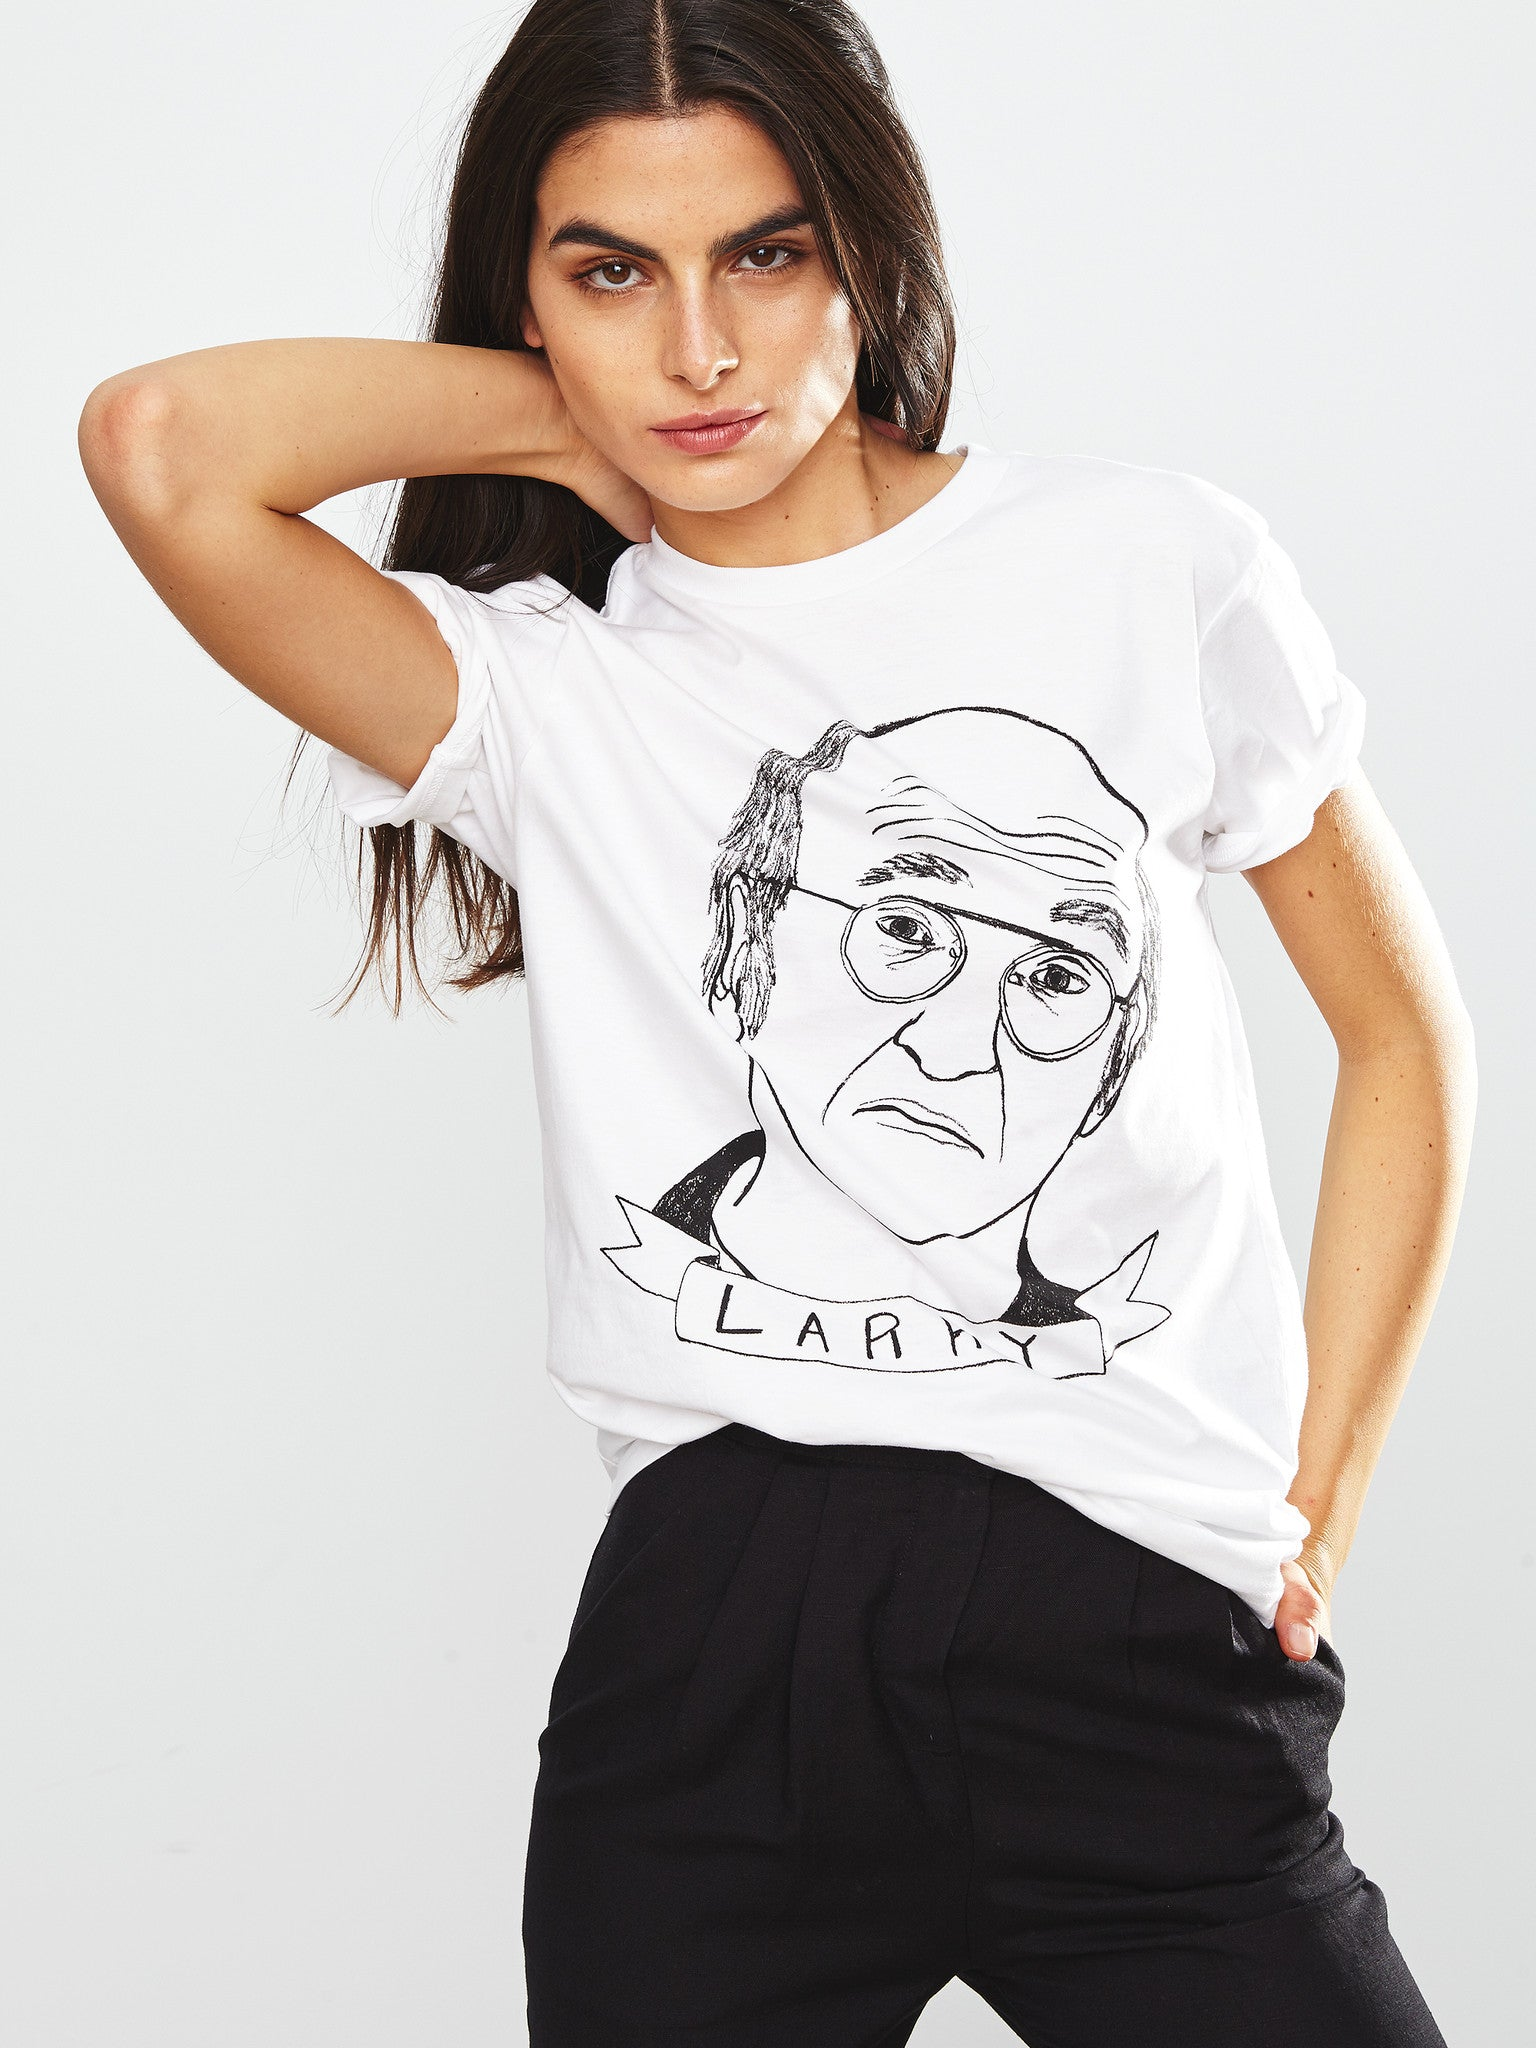 Larry David Shirt